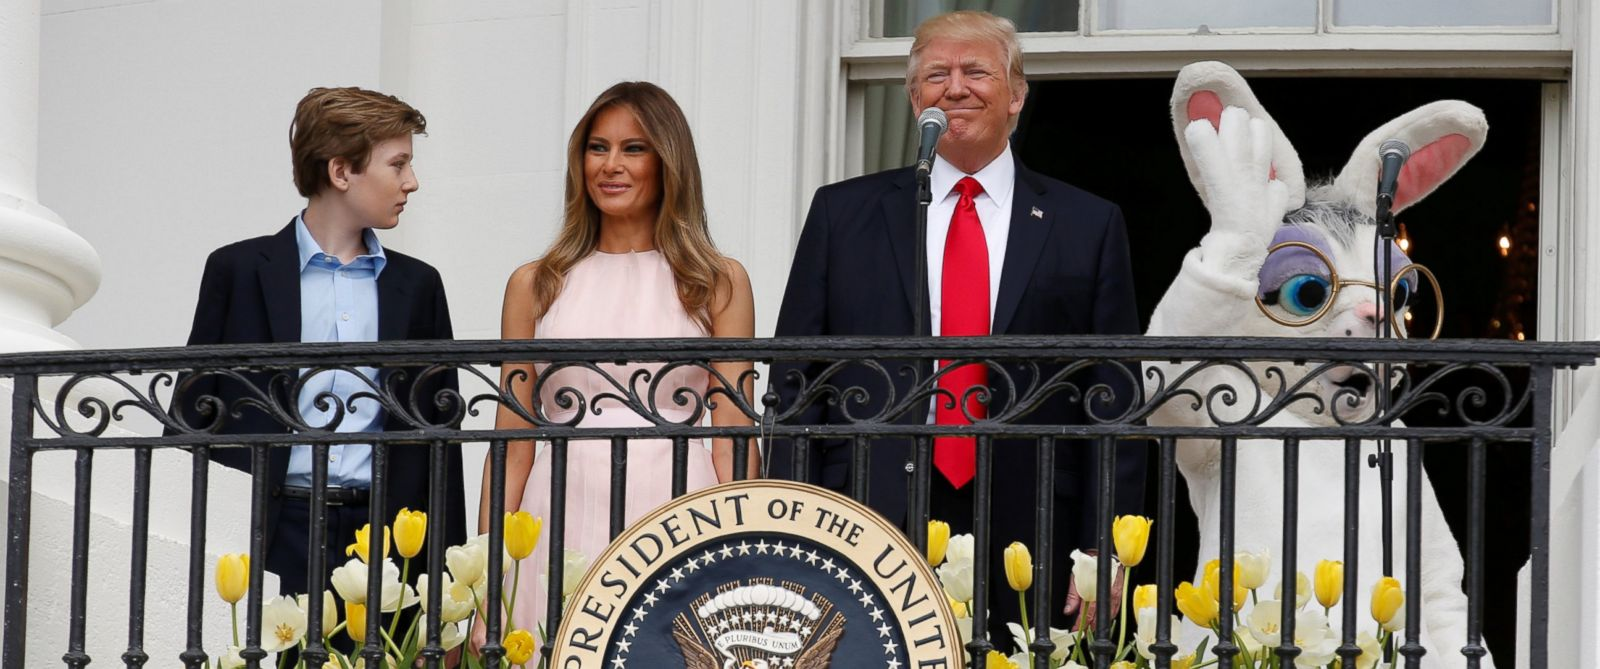 PHOTO: President Donald Trump stands with his son Barron, first lady Melania Trump and a performer in an Easter Bunny costume on the Truman Balcony during the White House Easter Egg Roll in Washington, April 17, 2017.